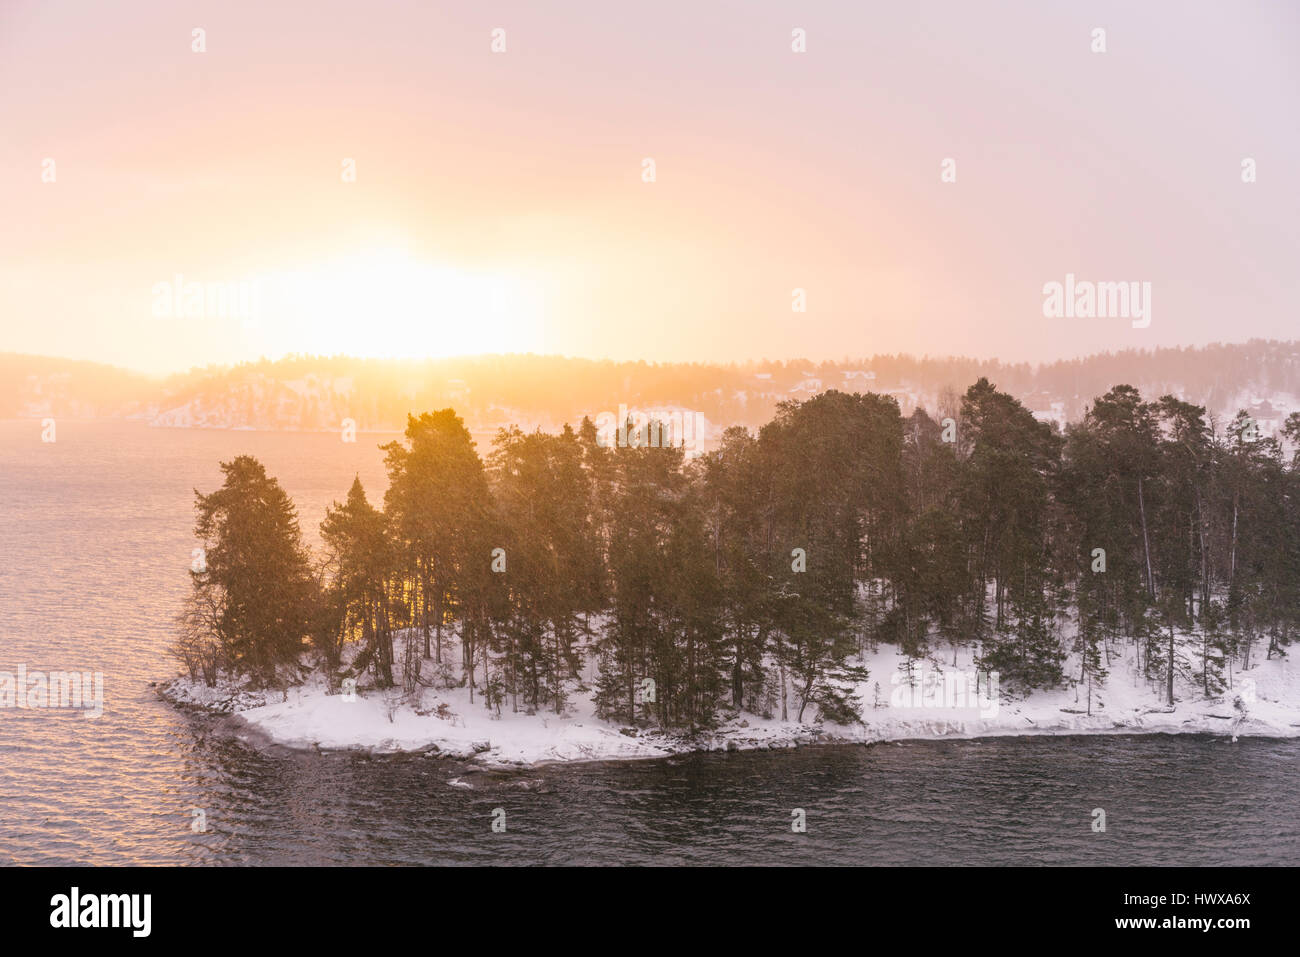 Wintery in Sweden and an island is the Stockholm Archipelago as seen from a ferry boat. - Stock Image